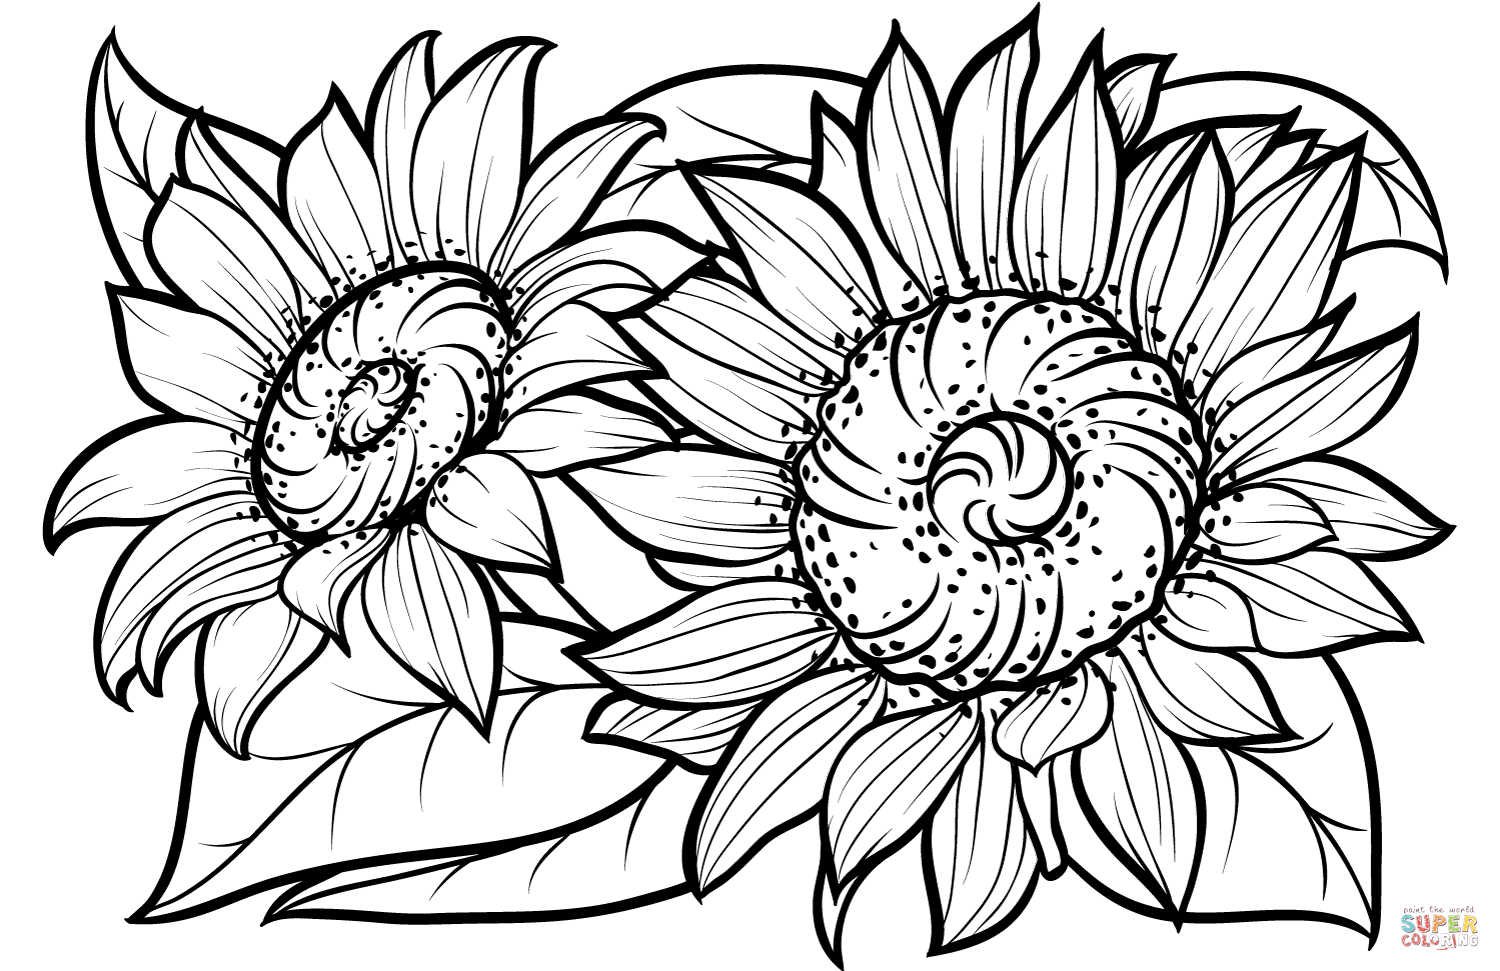 Sunflowers Super Coloring Sunflower coloring pages